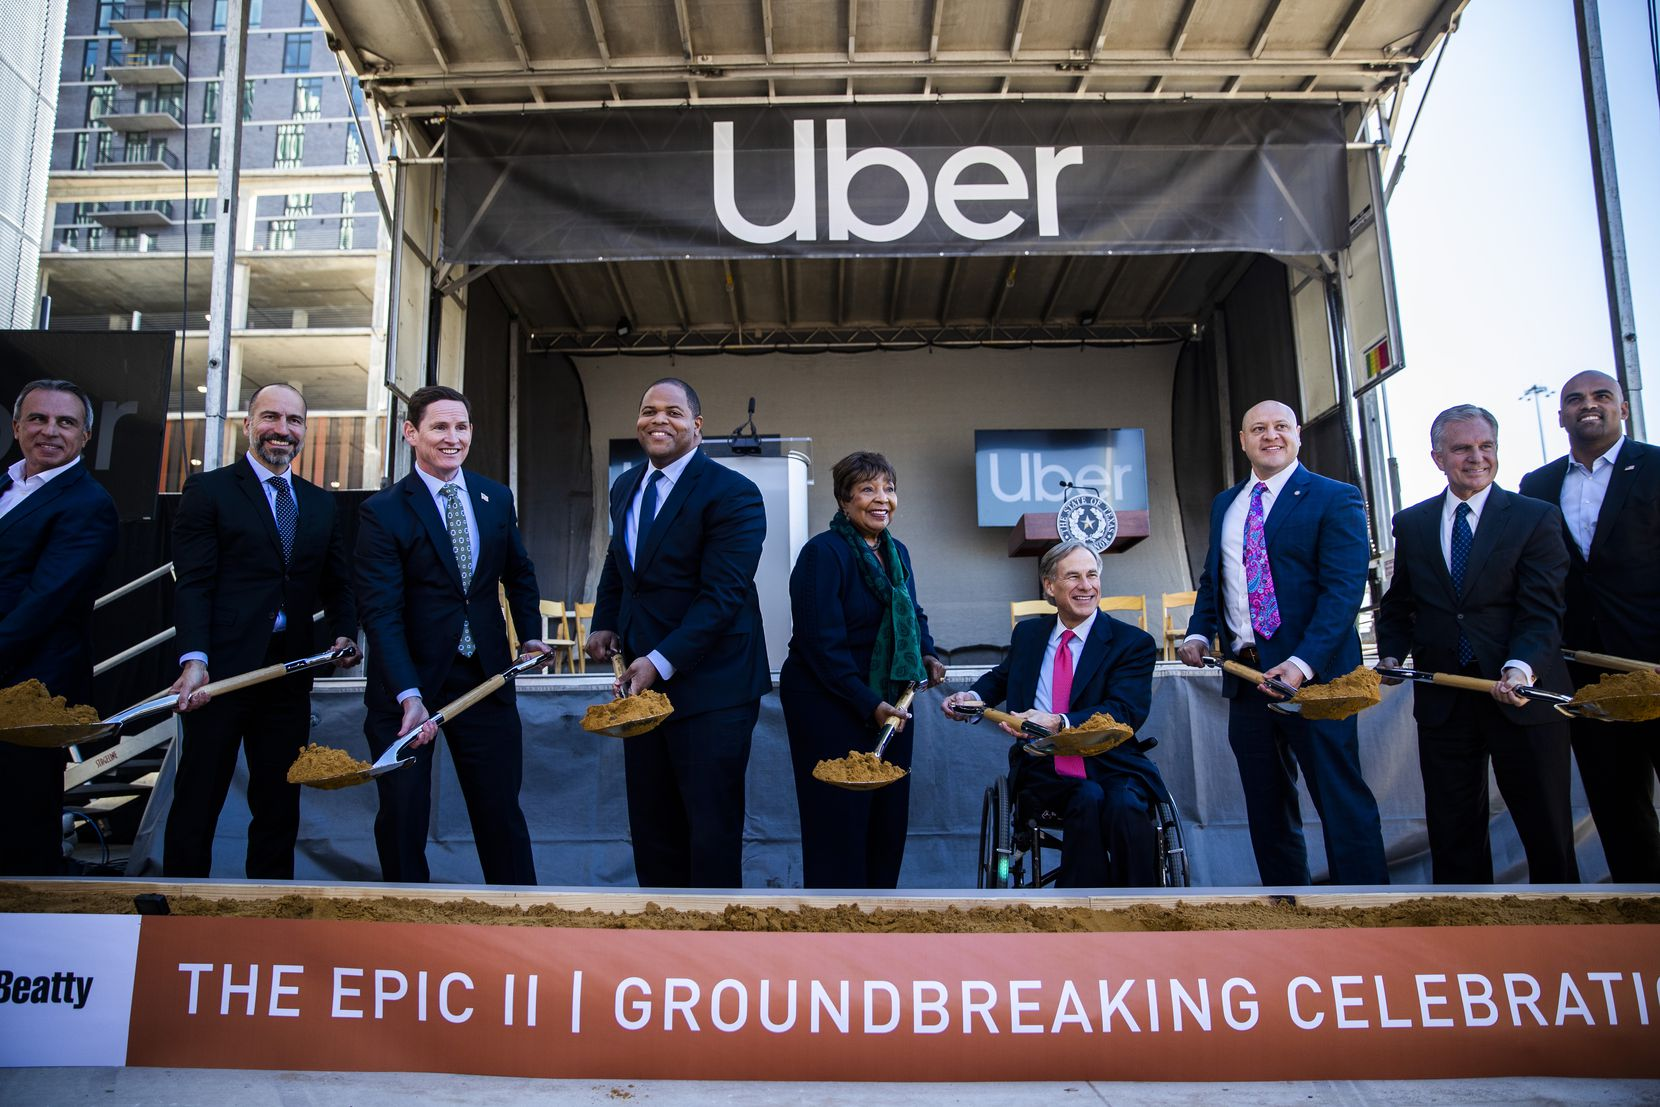 Uber CEO Dara Khosrowshahi (second from left), Dallas Mayor Eric Johnson (fourth from left), Gov. Greg Abbott (fourth from right) and other city and state officials posed for a photo during a groundbreaking ceremony for a new Uber Deep Ellum office in 2019.